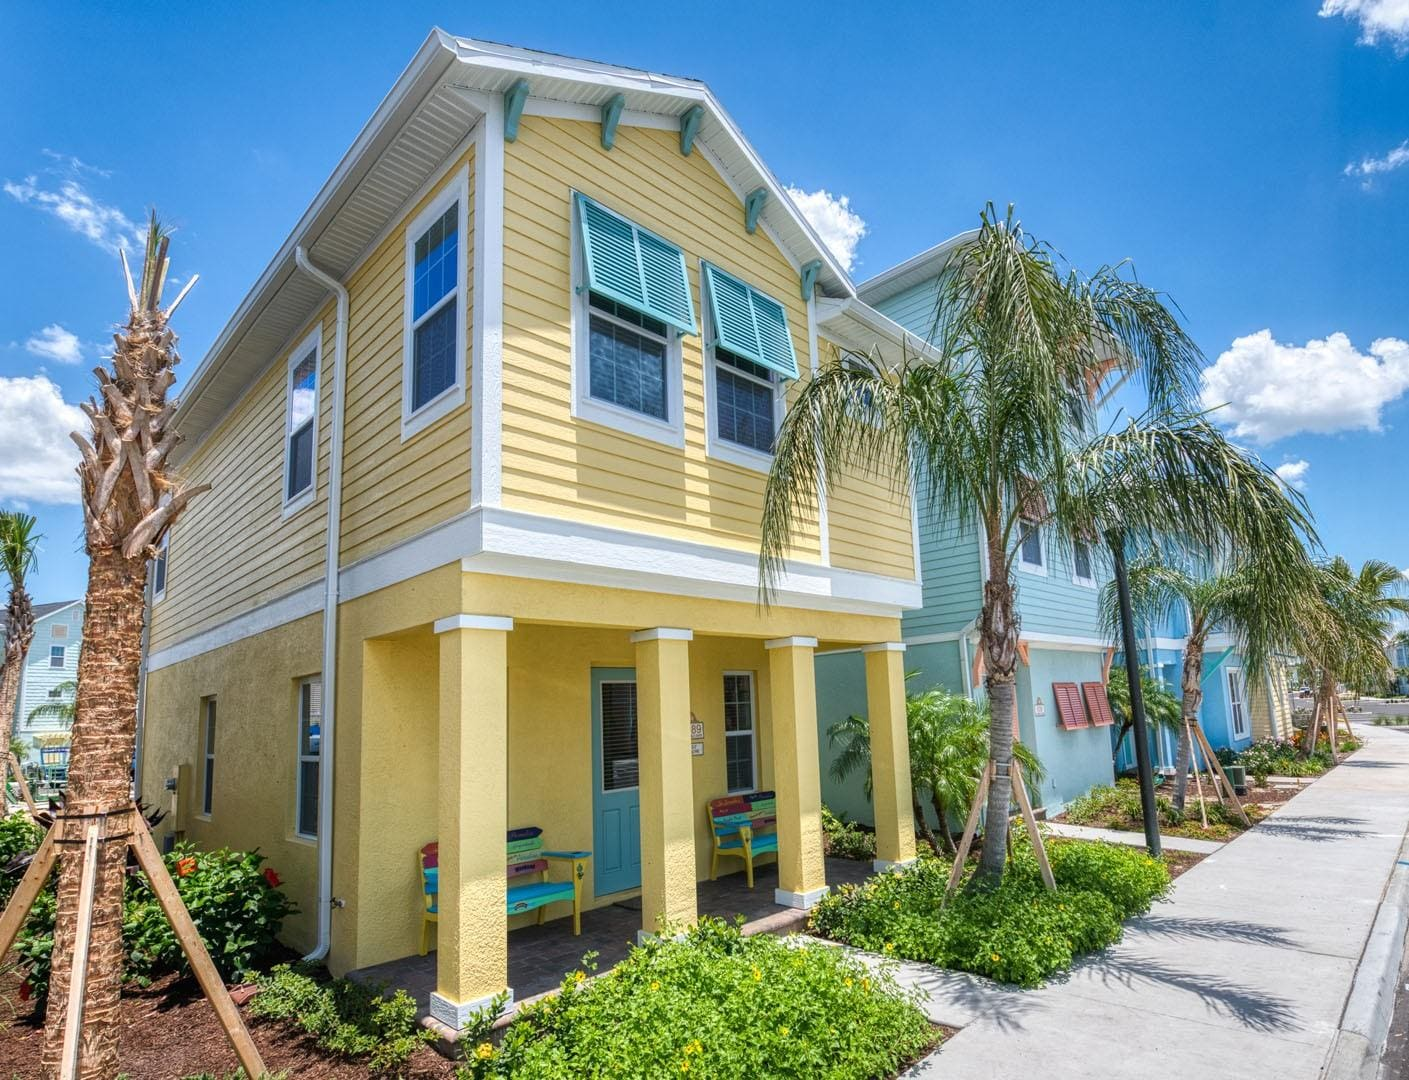 Property Image 1 - Cheery Cottage near Disney World with Hotel Amenities